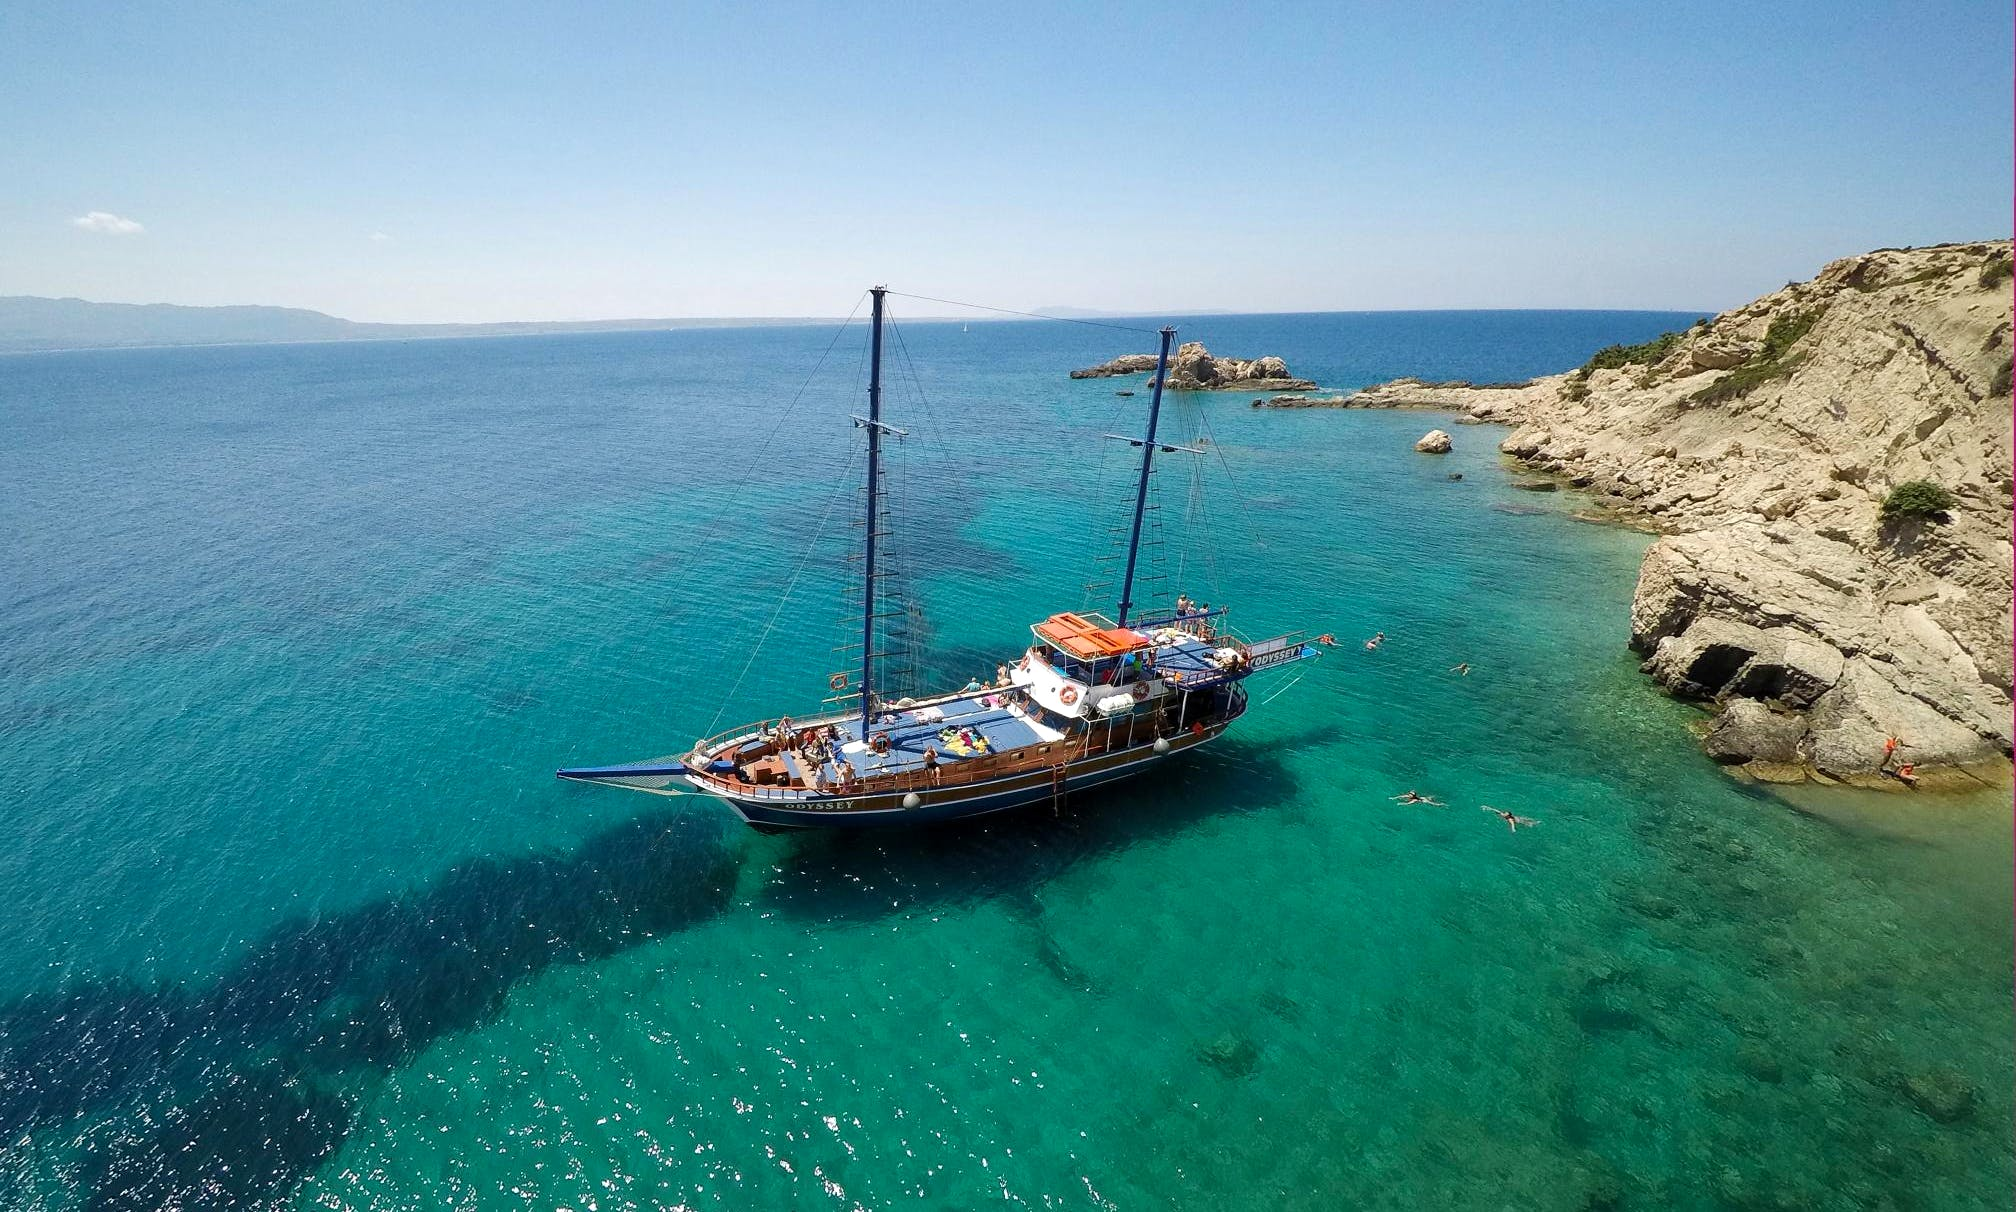 From the Port of Kos: Full Day Boat Cruise to 3 Islands!